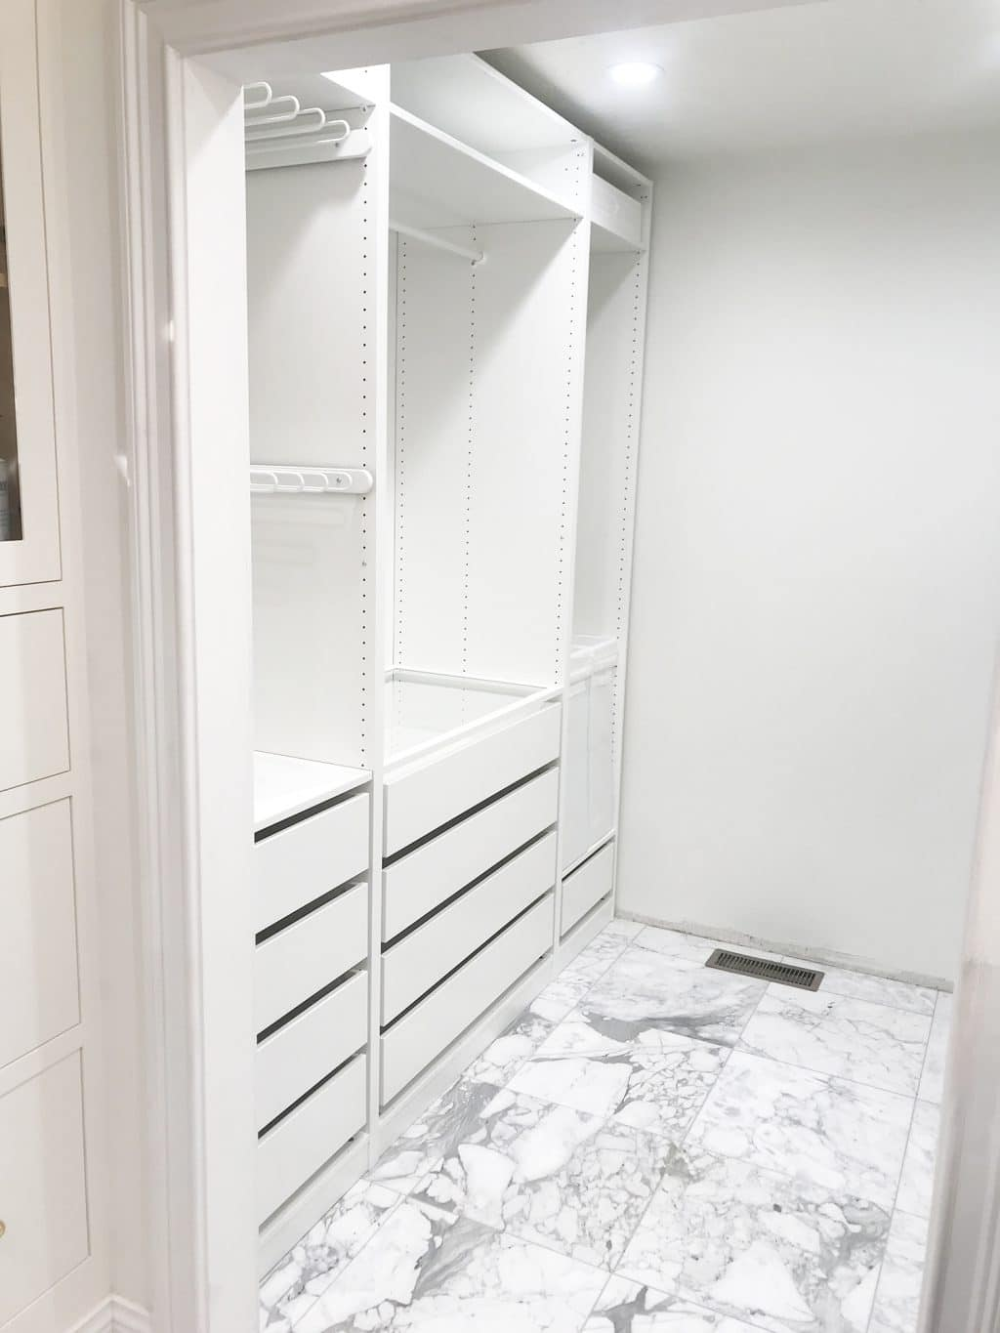 Installing Our Ikea Pax Wardrobes Plus Tips For In 2020 Ikea Pax Wardrobe Ikea Closet Organizer Ikea Pax